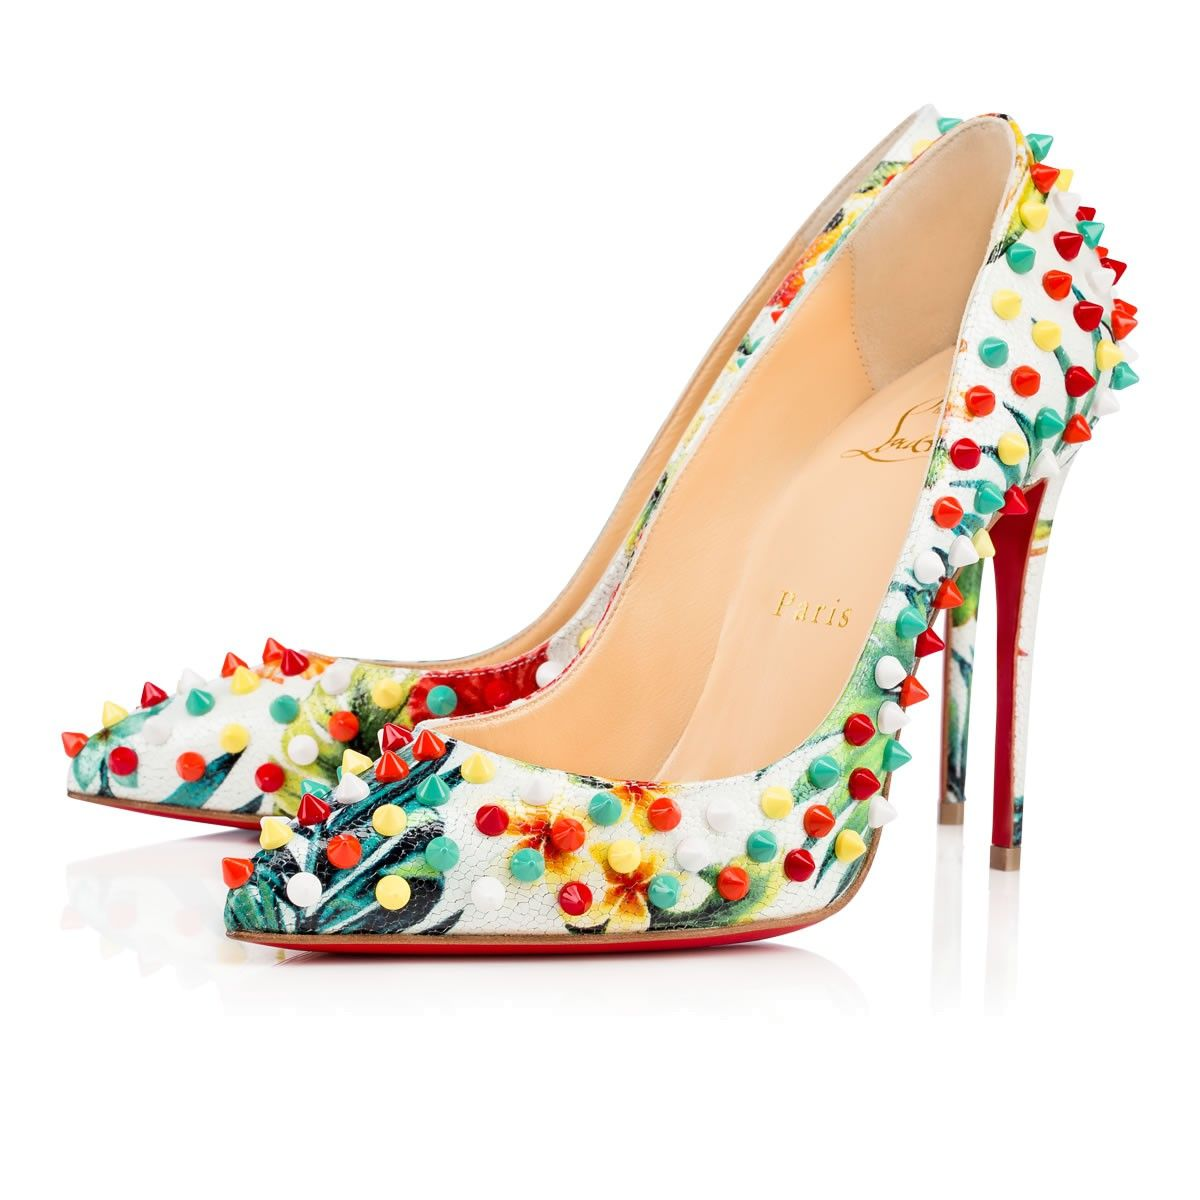 newest collection ad547 2b0ca CHRISTIAN LOUBOUTIN Follies Spikes Calf Hawaii, White ...